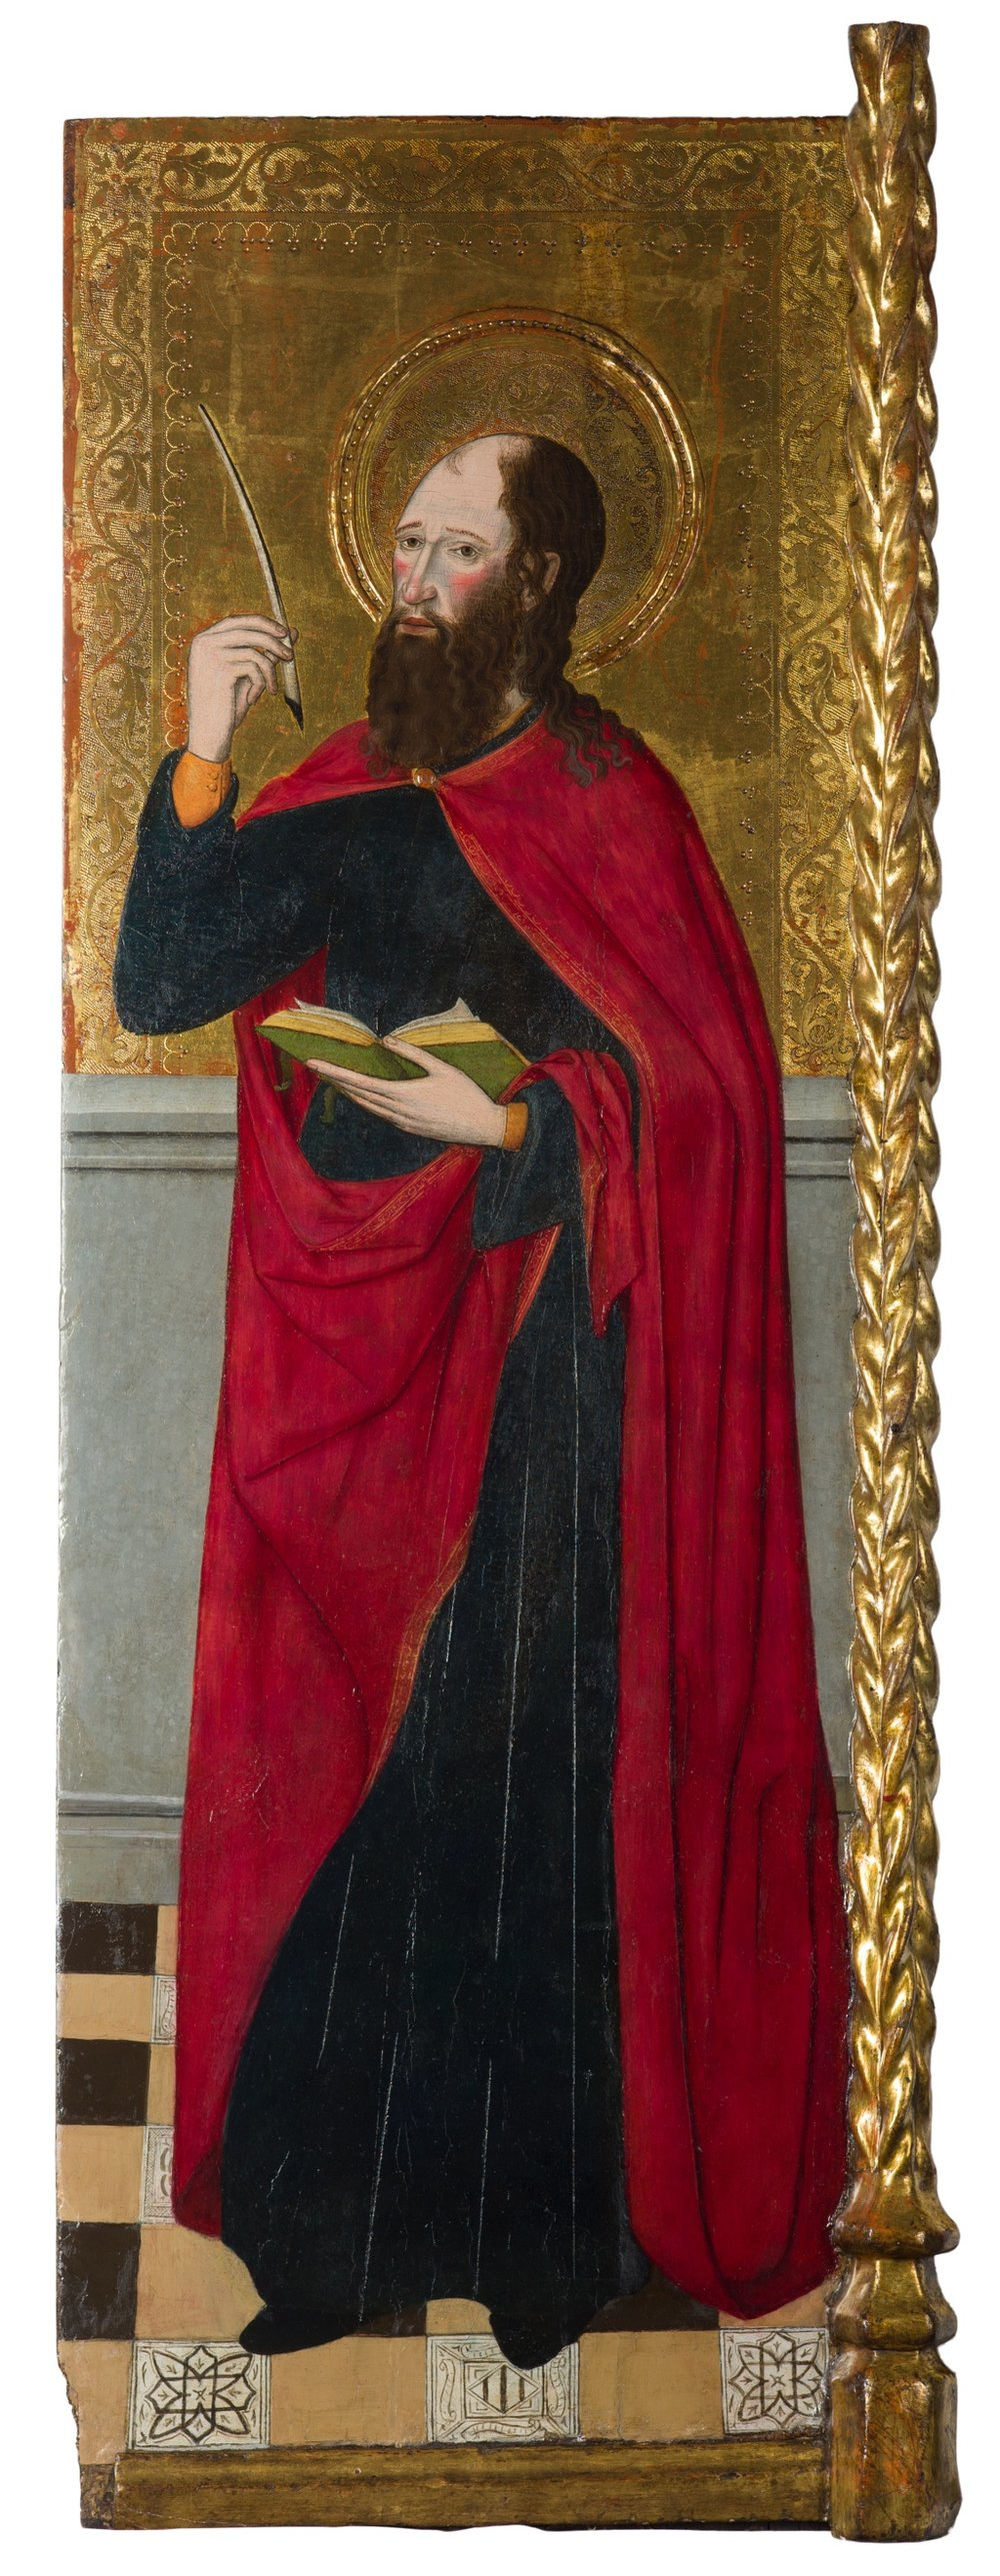 261_Joan Figuera_The retable of The Virgin. Saint Peter Martyr. and Saint Mark_Egg tempera on panel_261 x 249 cm. 102 ¾ x 98 in._thumbnail-2.jpg